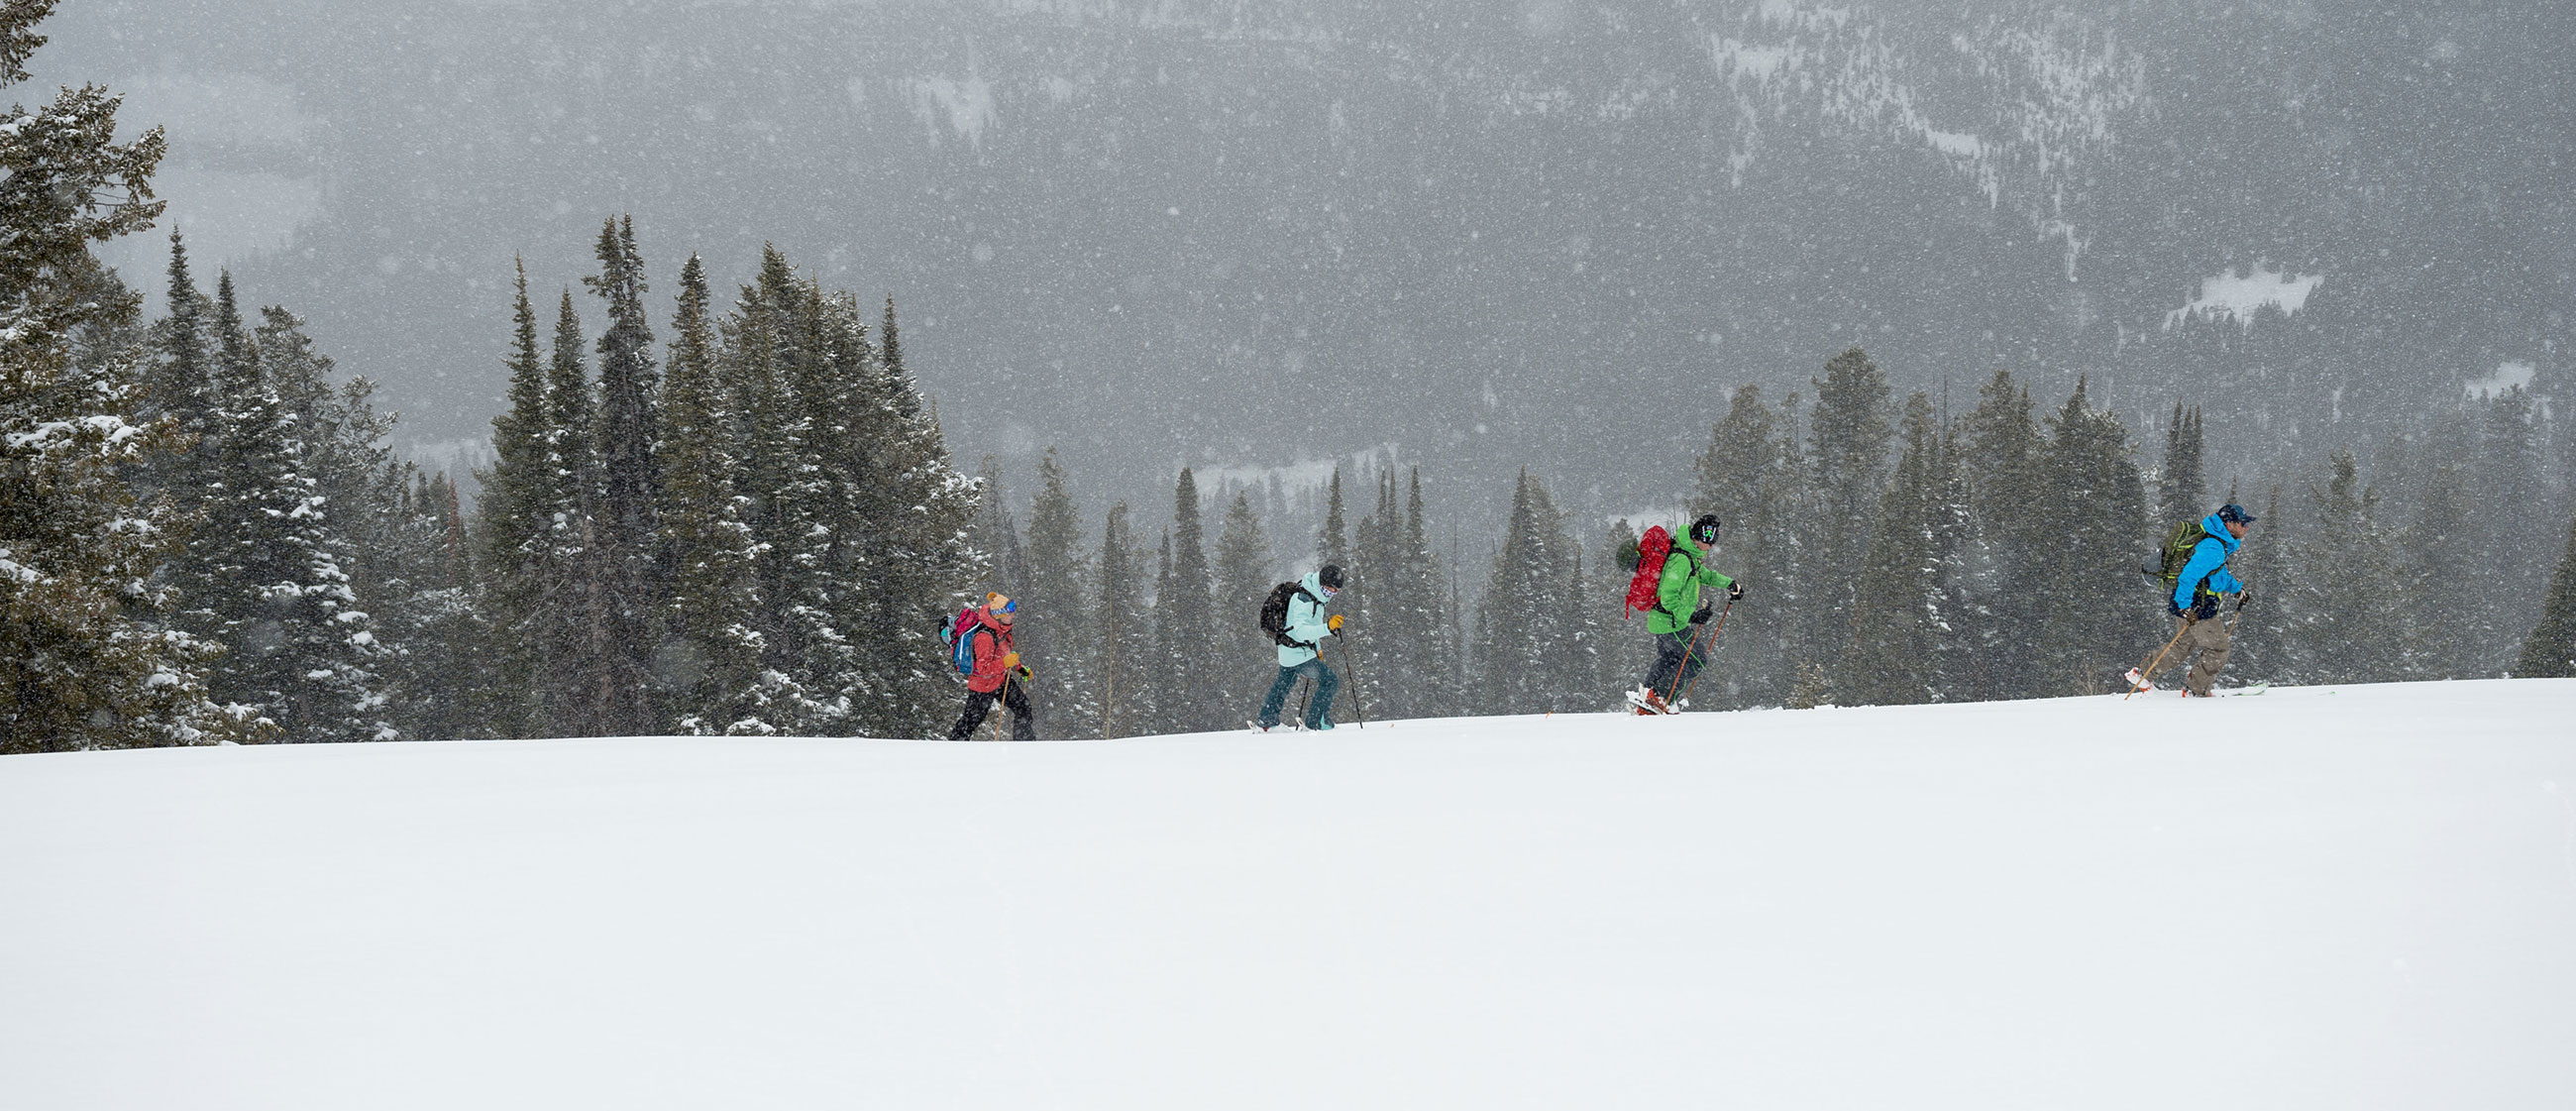 The Powder Police: Keeping the Backcountry Safe